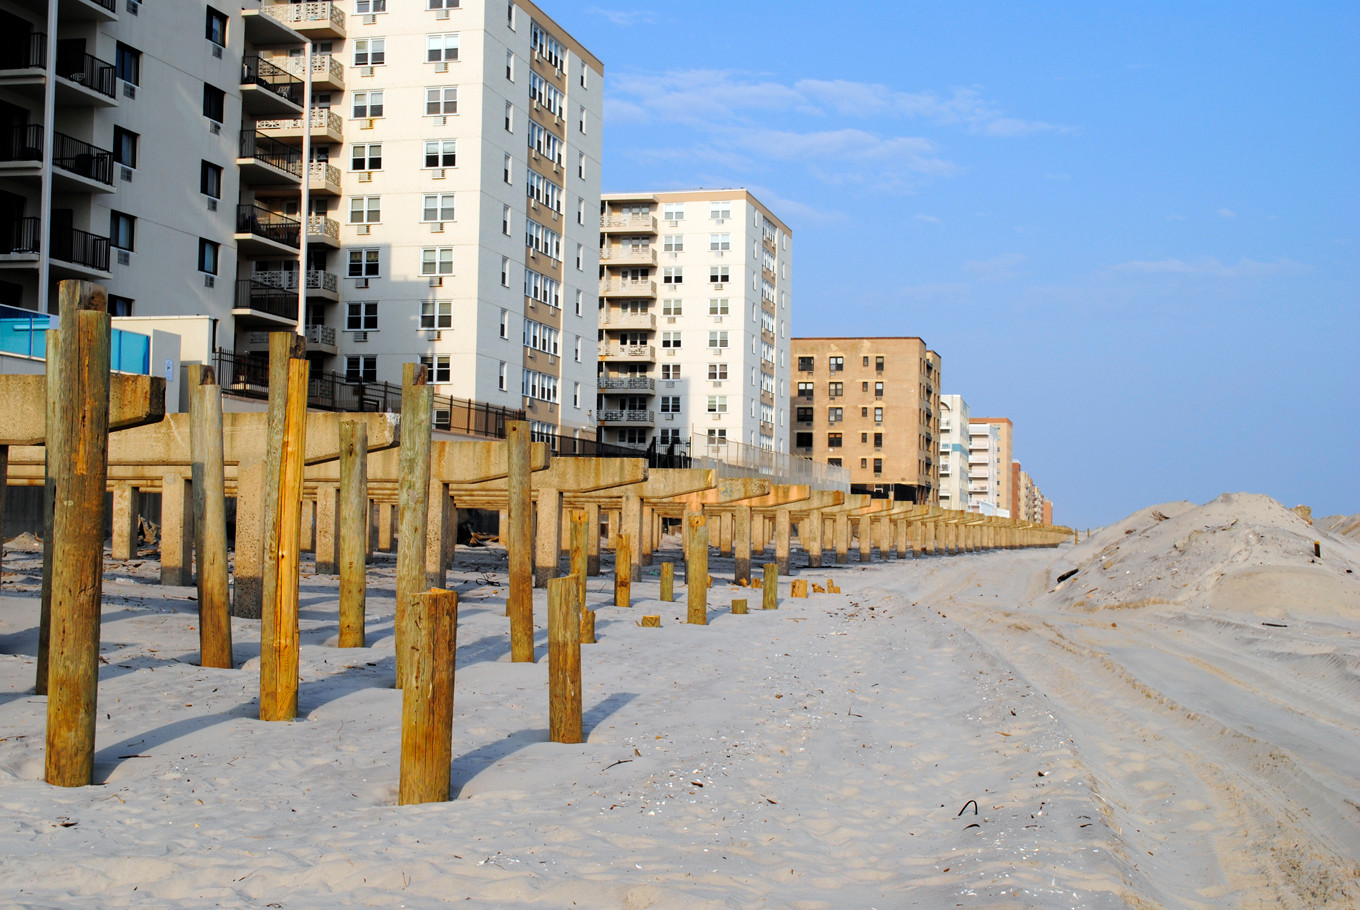 City officials say that the costs of rebuilding the Long Beach boardwalk are �unique,� while a number of residents say that the project's costs are exorbitant compared to other boardwalk projects.